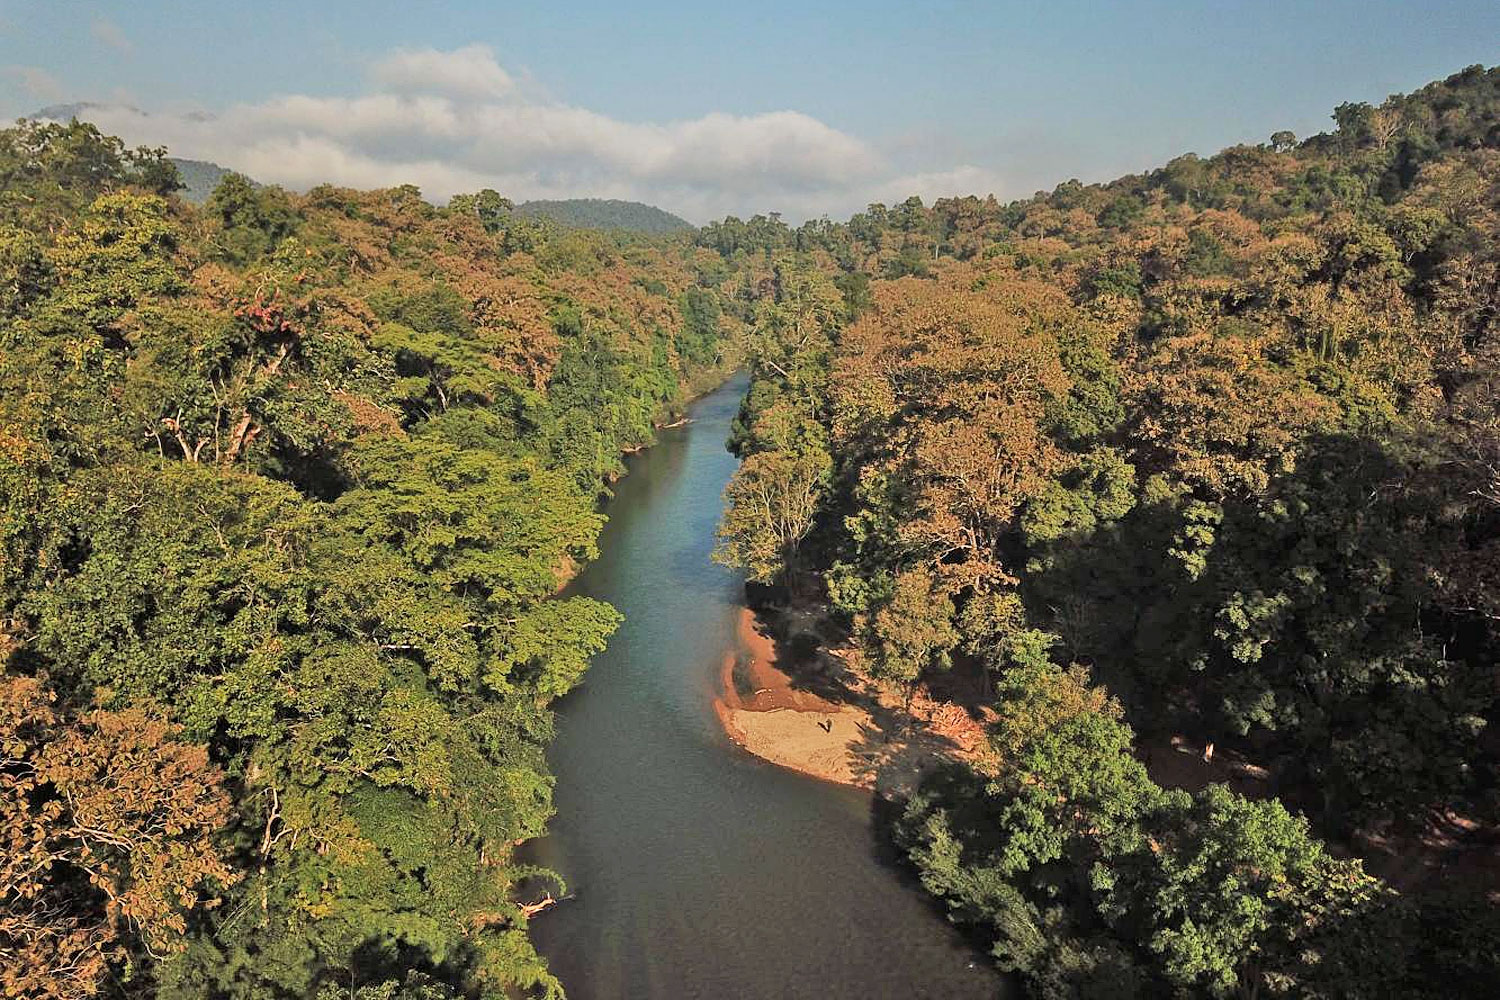 The Ngao River, which flows from a lush forest in Thailand's Salween basin, will be adversely affected if the water diversion project materialises.